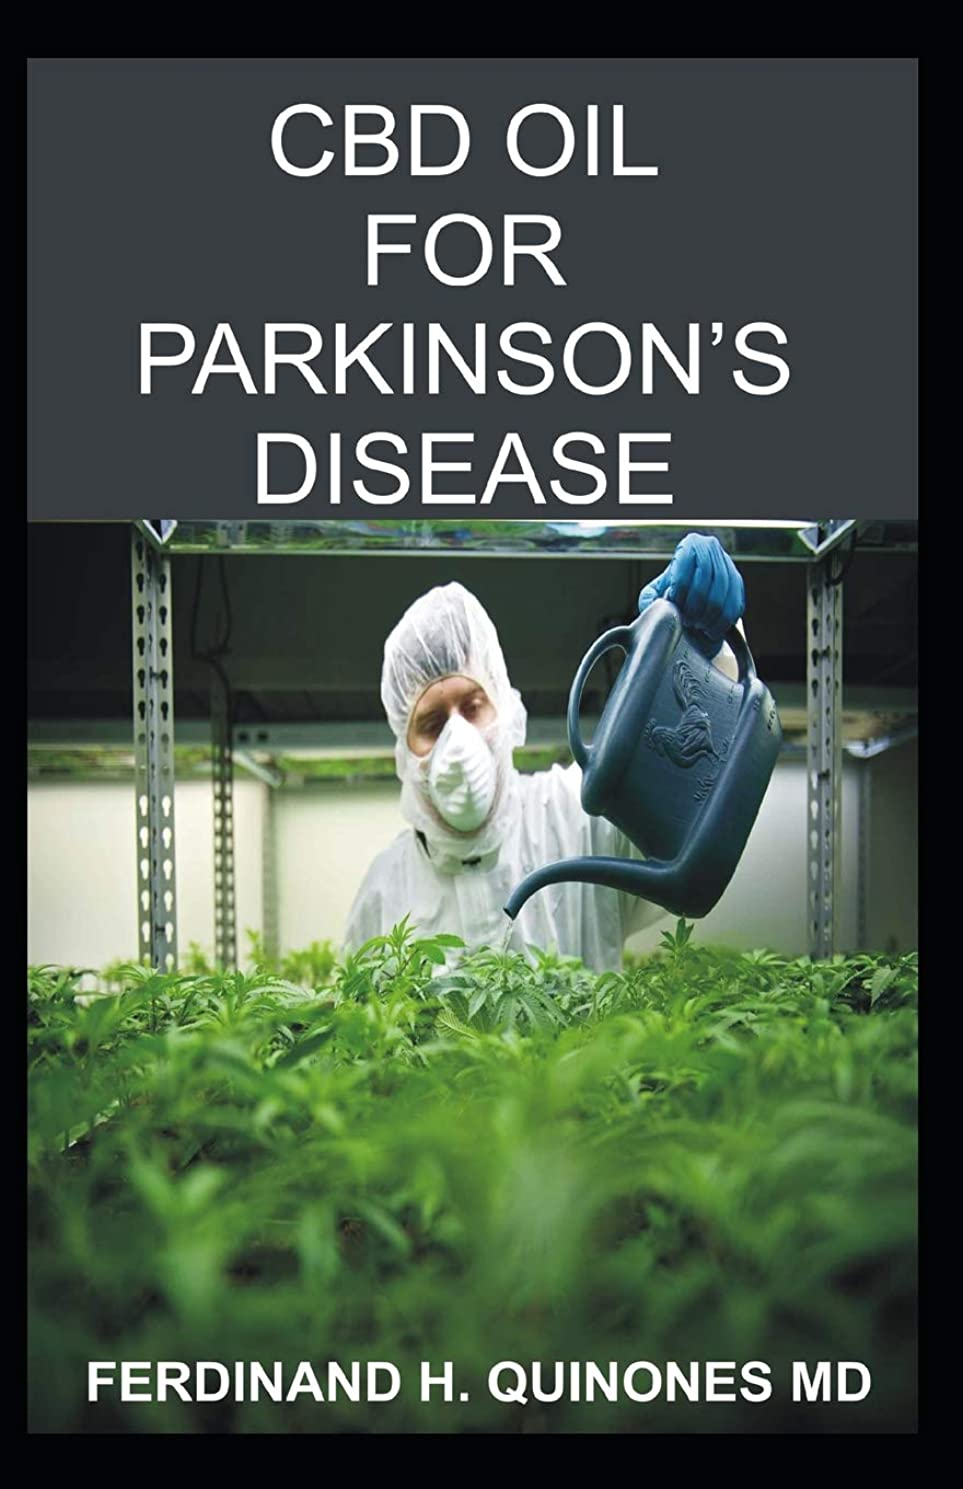 CBD OIL FOR PARKINSON'S DISEASE: Everything You Need To Know About Using CBD OIL To Treat Parkinson's Disease